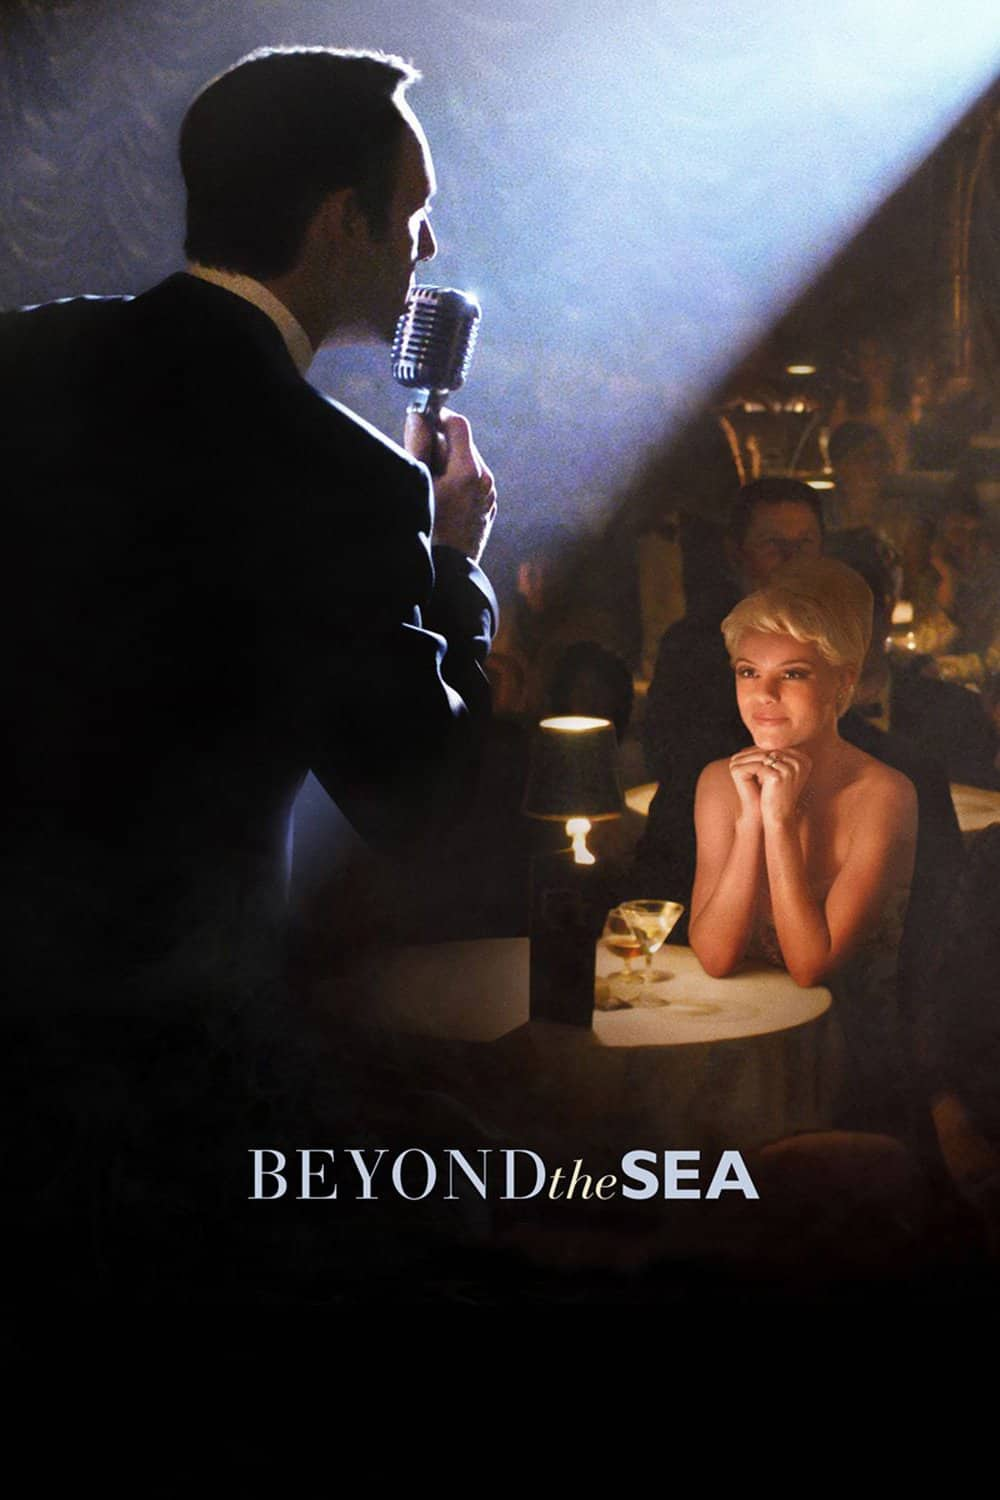 Beyond the Sea, 2004